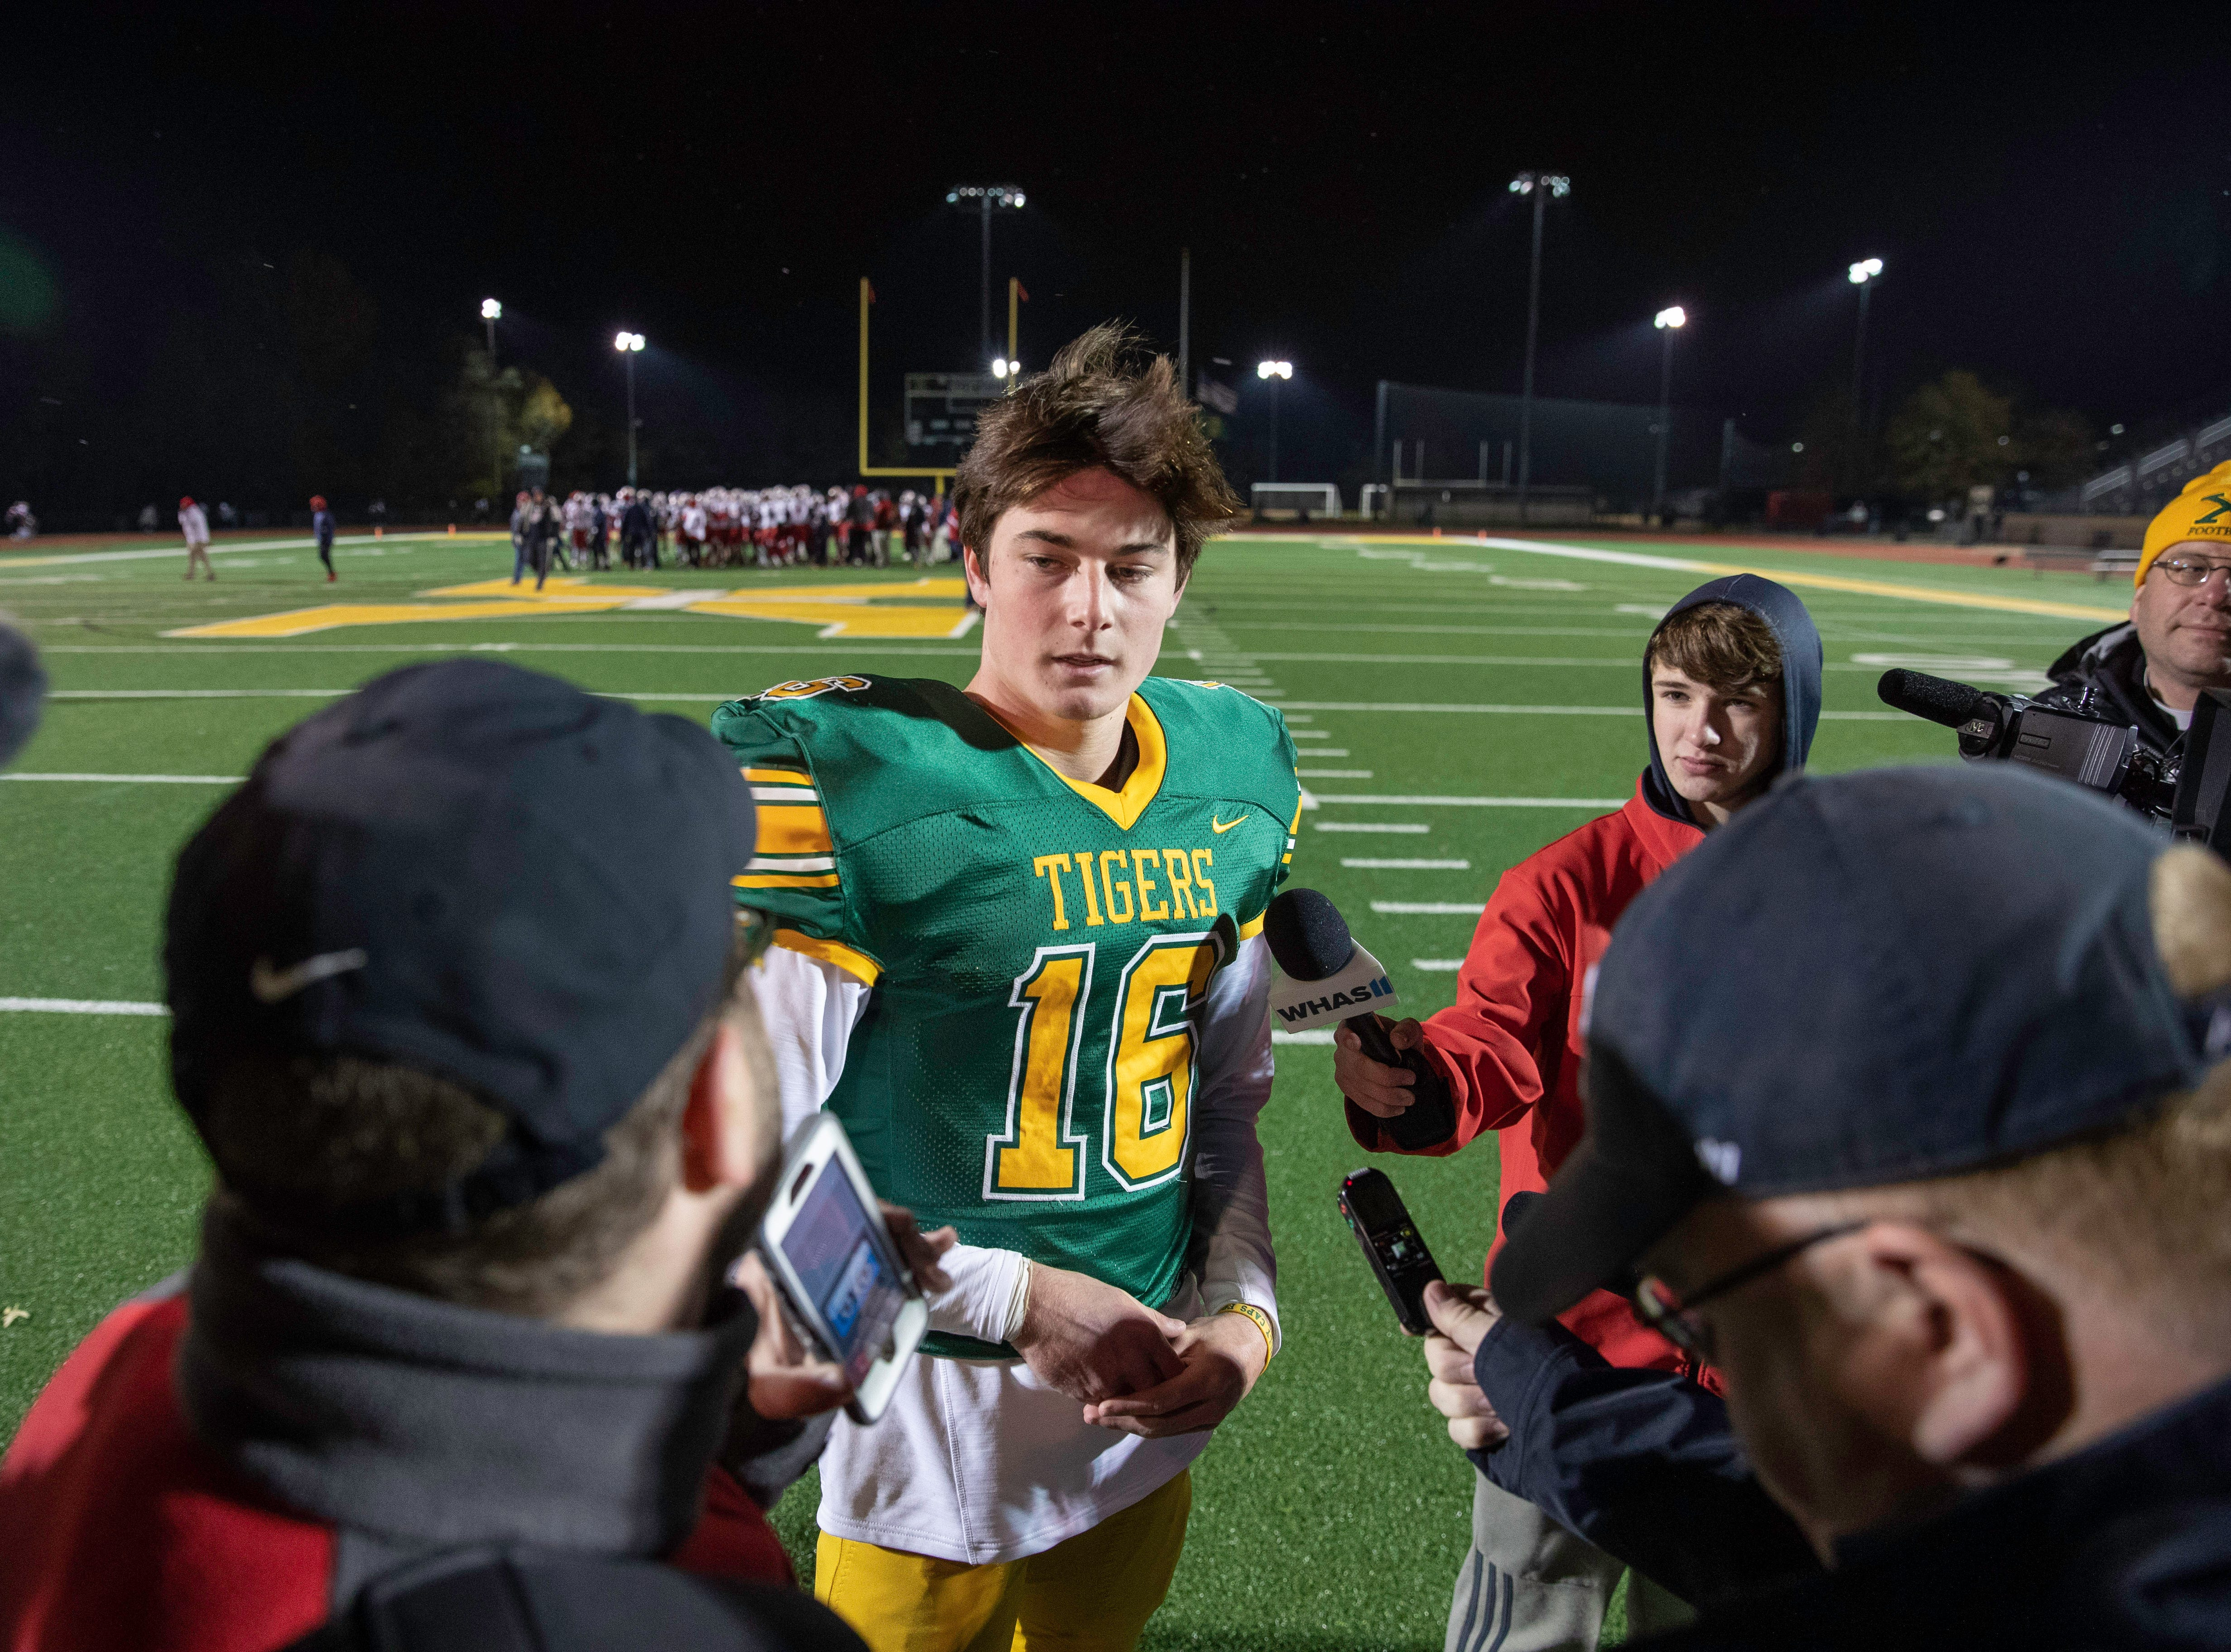 St. X senior Jude Carlon speaks with media after the Tigers defeated the Butler Bears 35-20 in the KHSAA regional playoff game at St. Xavier High School, Friday, Nov. 9, 2018. Carlon tallied his fourth takeaway of the season tonight, all four coming against Butler.